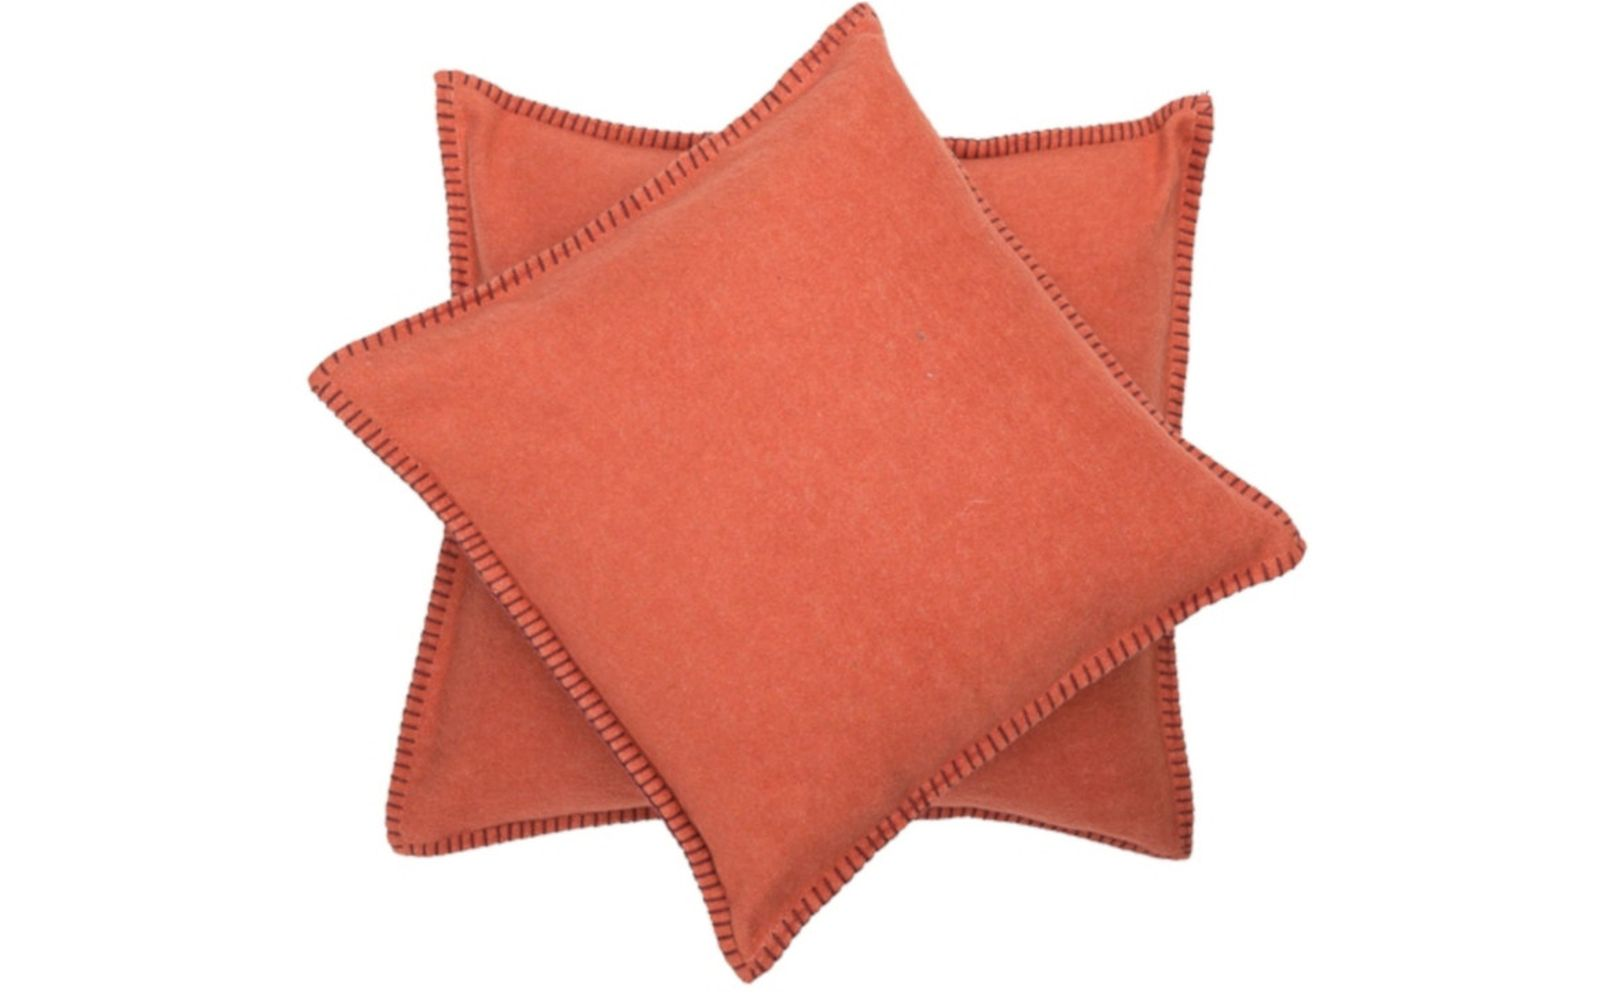 SYLT cushion cover